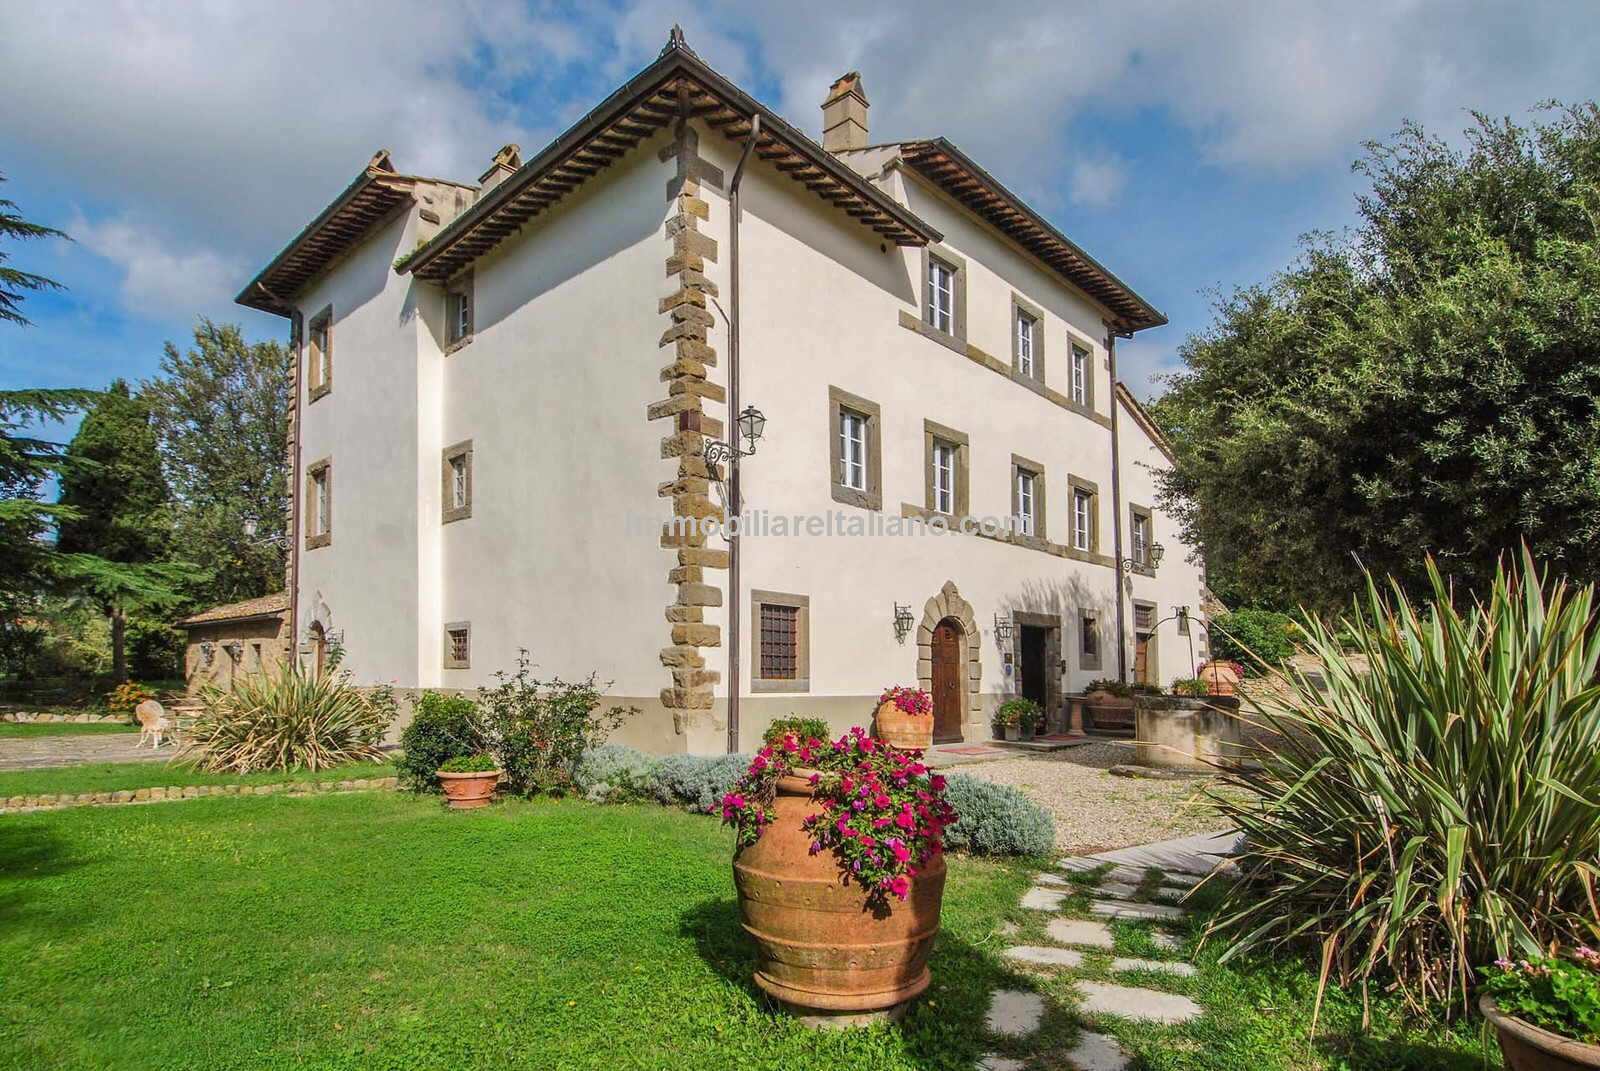 External view of Hotel in Tuscany Italy for sale